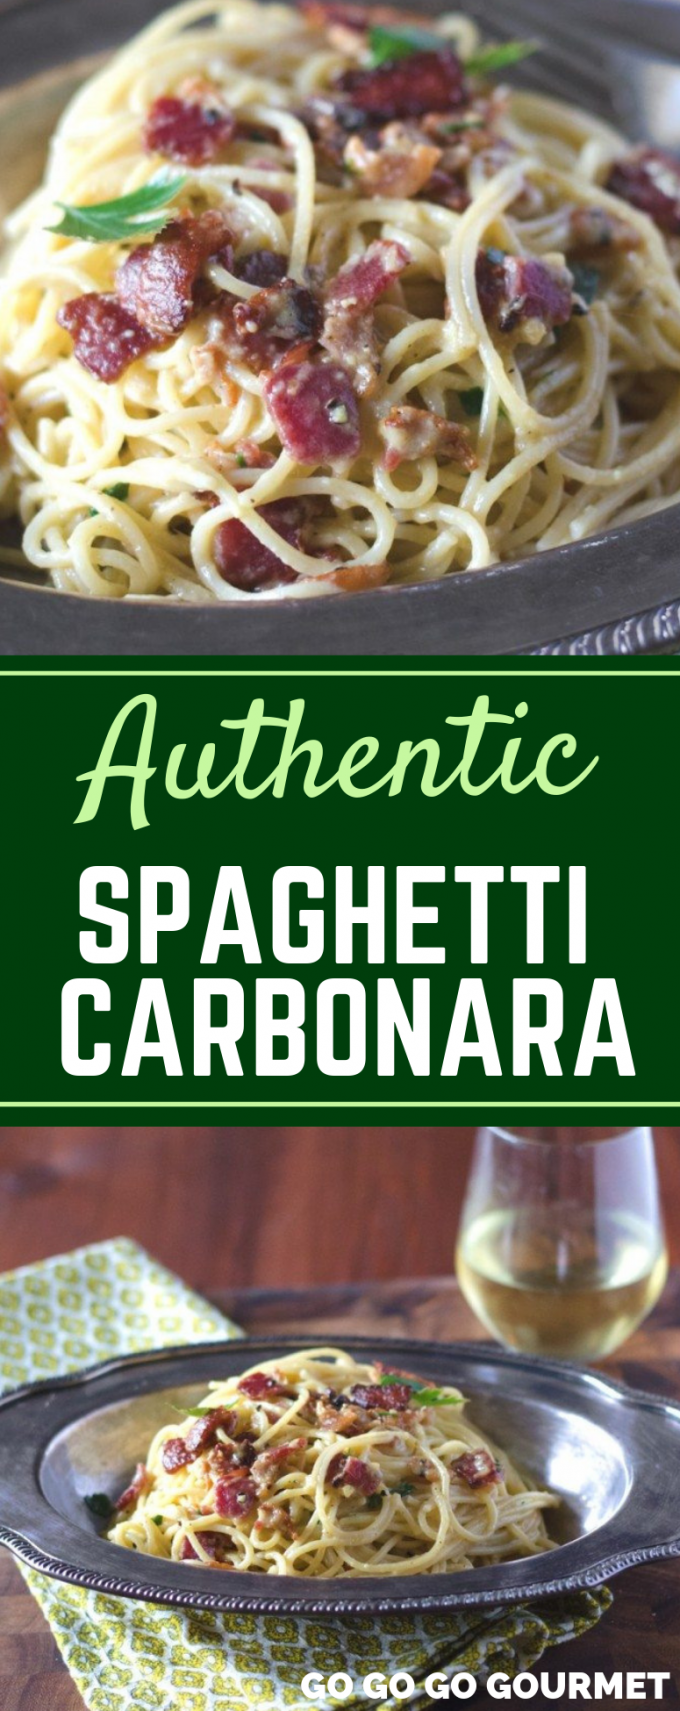 This easy authentic Spaghetti Carbonara is even better than the Pioneer Woman recipe! With cream and pancetta, this classic Italian dish is the best! #gogogogourmet #authenticspaghetticarbonara #spaghetticarbonara #easypastarecipes via @gogogogourmet